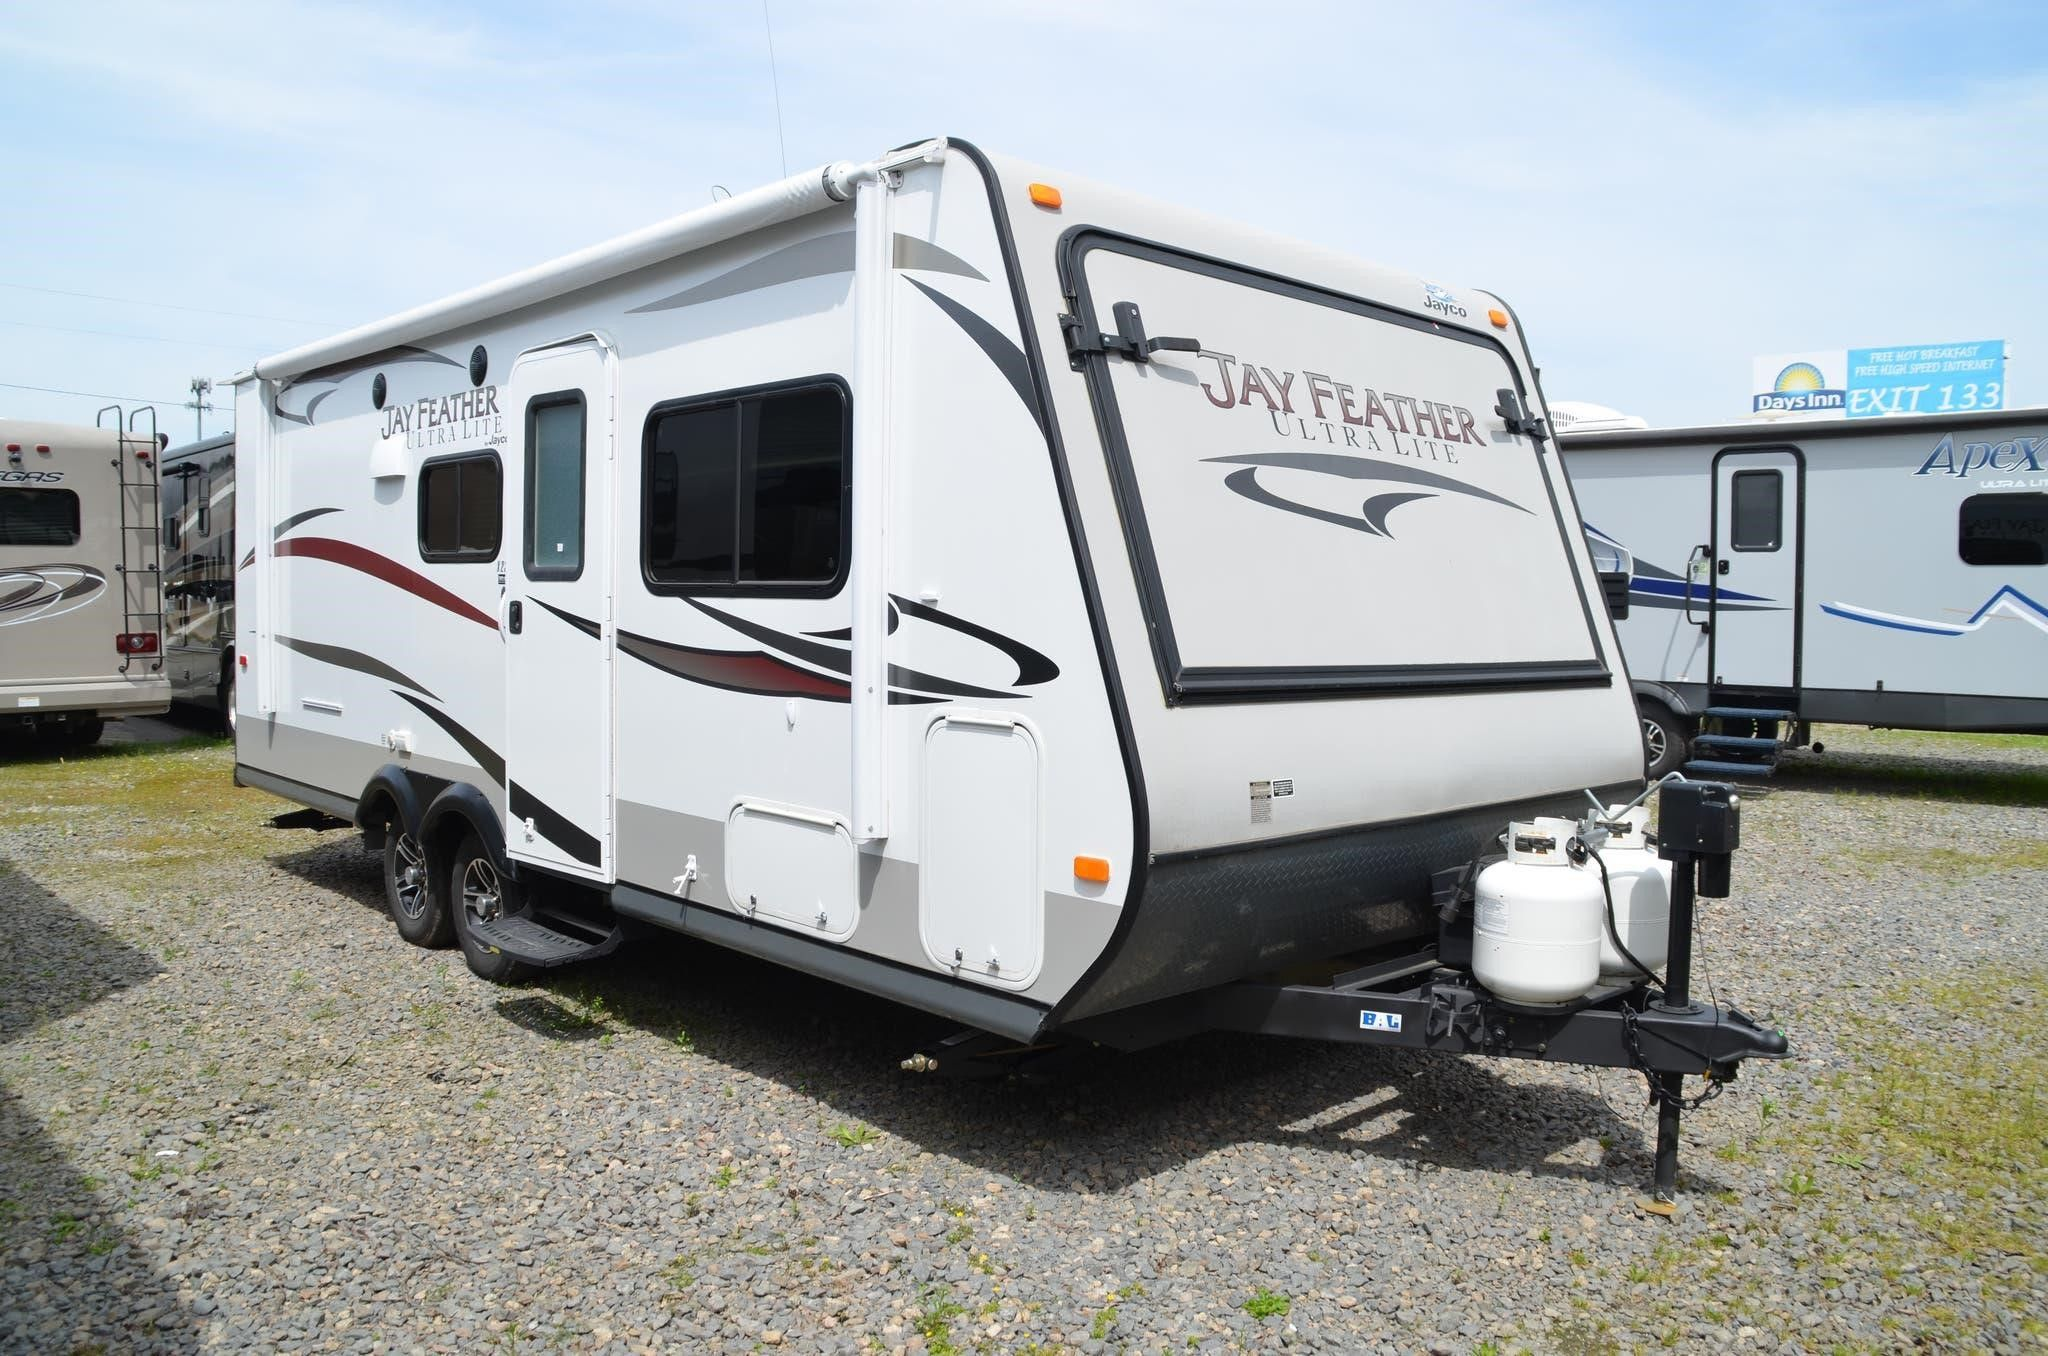 2014 Jayco Jay Feather Ultra Lite X23f For Sale In Little Rock Arkansas At Rvuniverse Com Jay Feather Jayco Recreational Vehicles